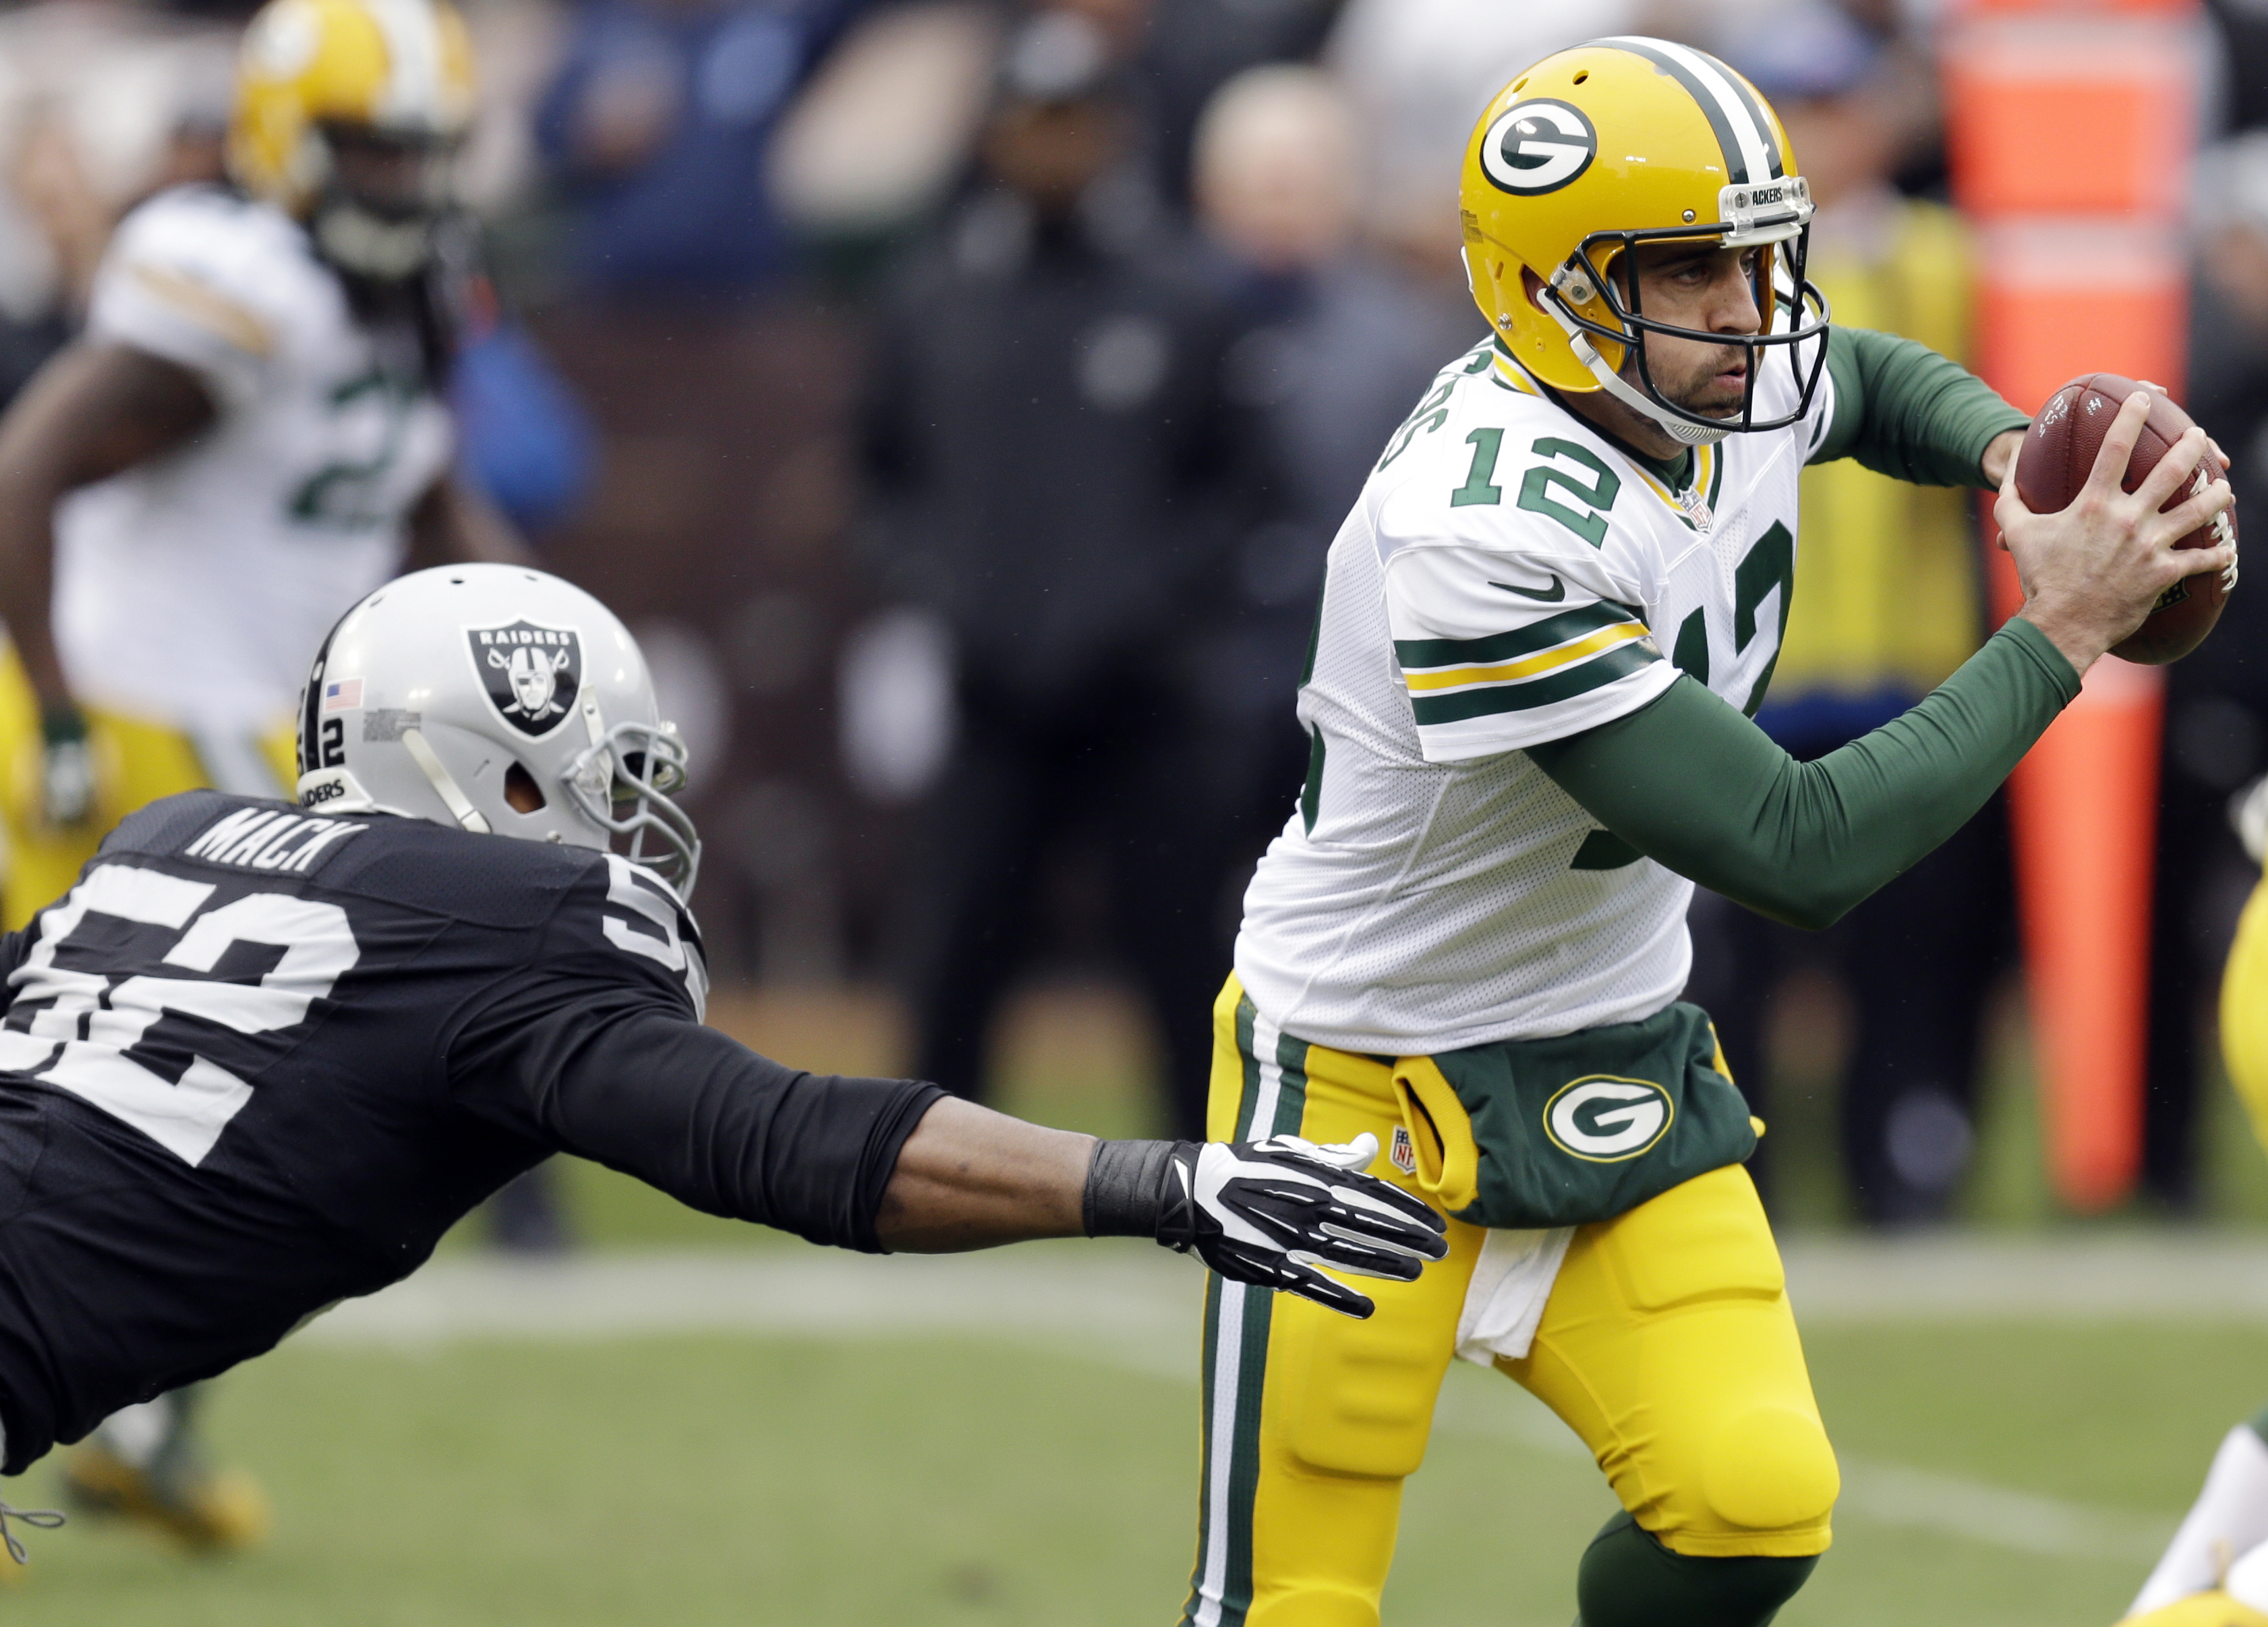 Green Bay Packers quarterback Aaron Rodgers (12) is sacked by Oakland Raiders defensive end Khalil Mack (52) during the first half of an NFL football game Sunday, Dec. 20, 2015, in Oakland, Calif. (AP Photo/Ben Margot)